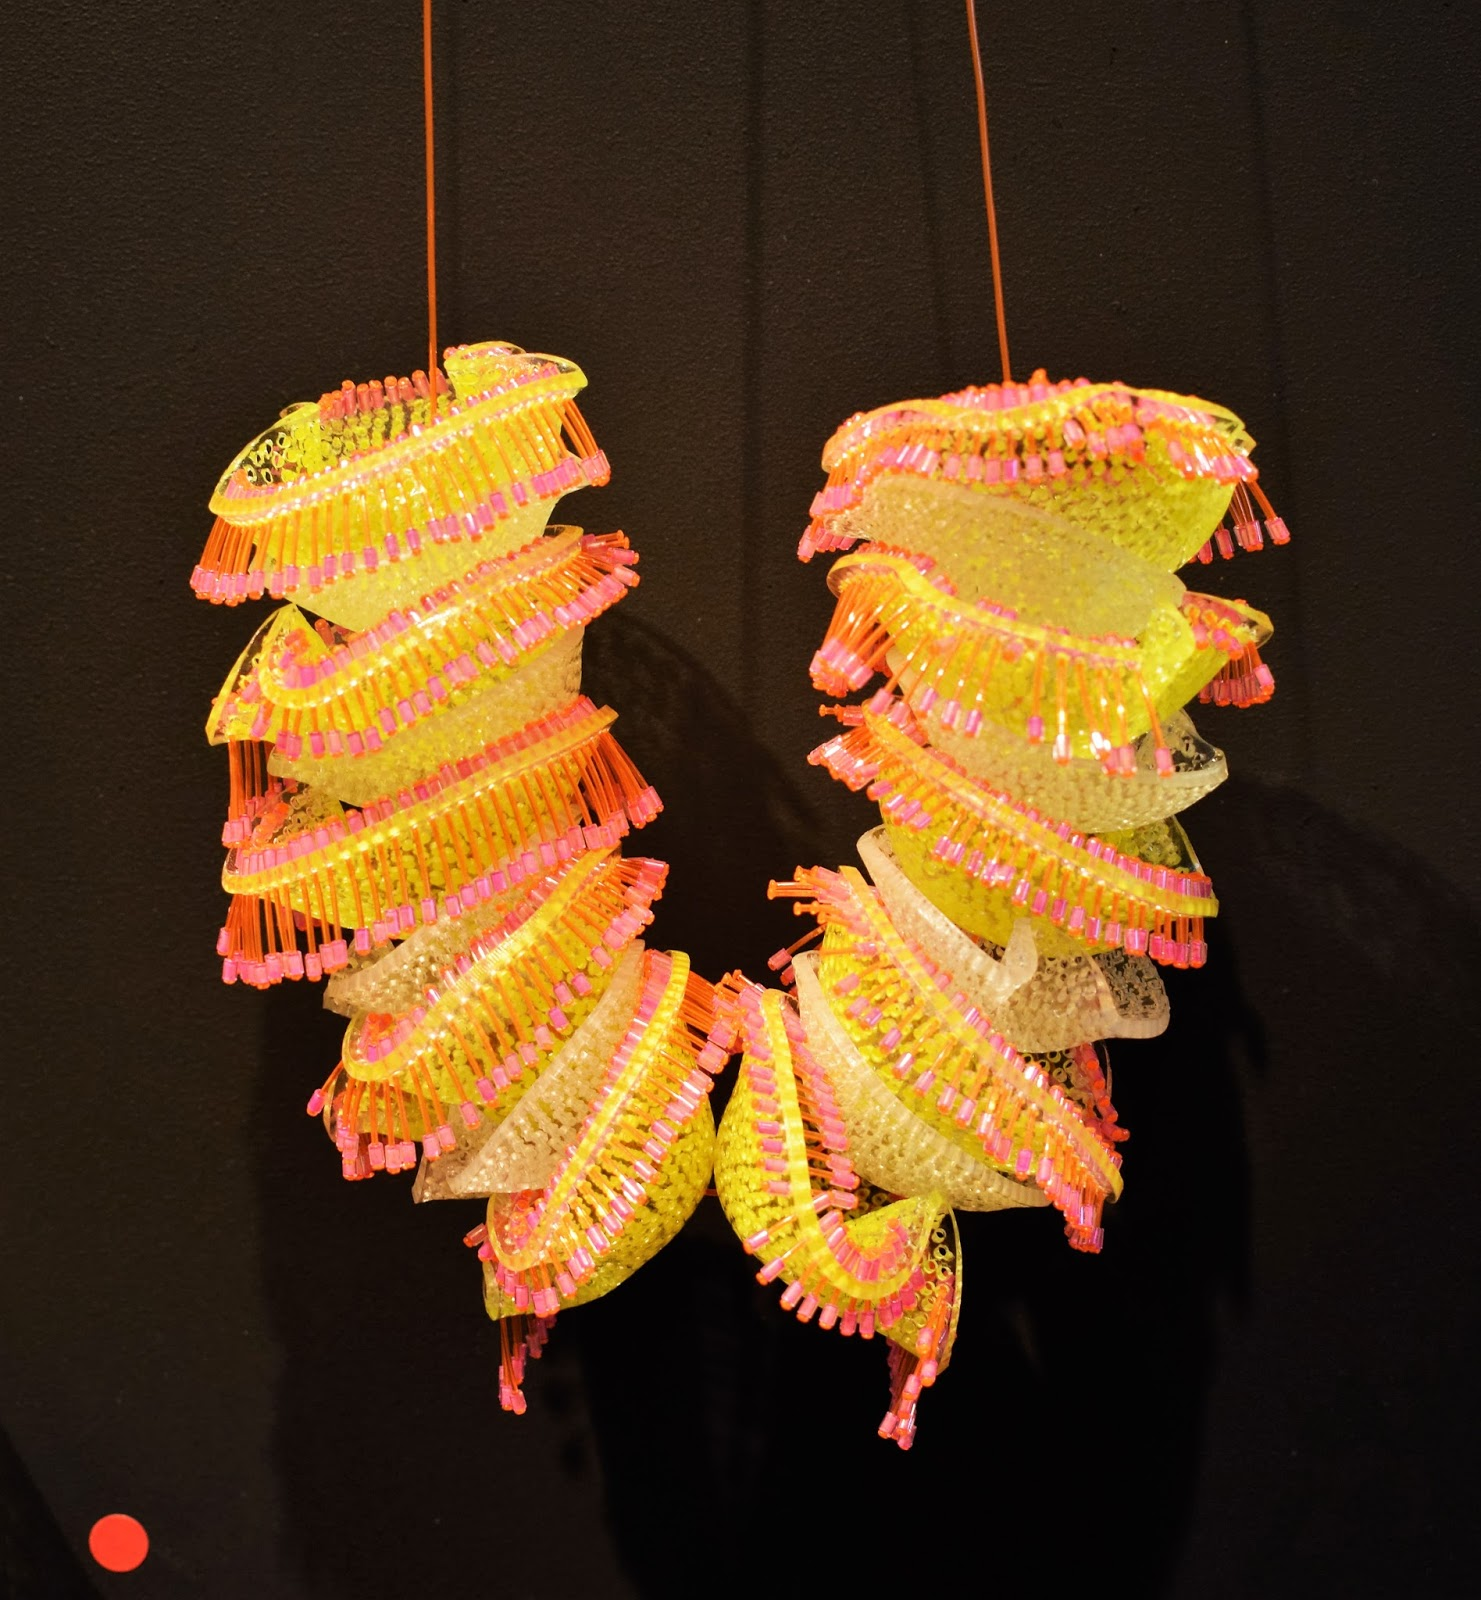 eca degree show 2016, edinburgh college of art graduate, li wanshu jewellery, fluorescent jewellery, sea anenome inspiration, glow in the dark jewellery, emerging designers UK